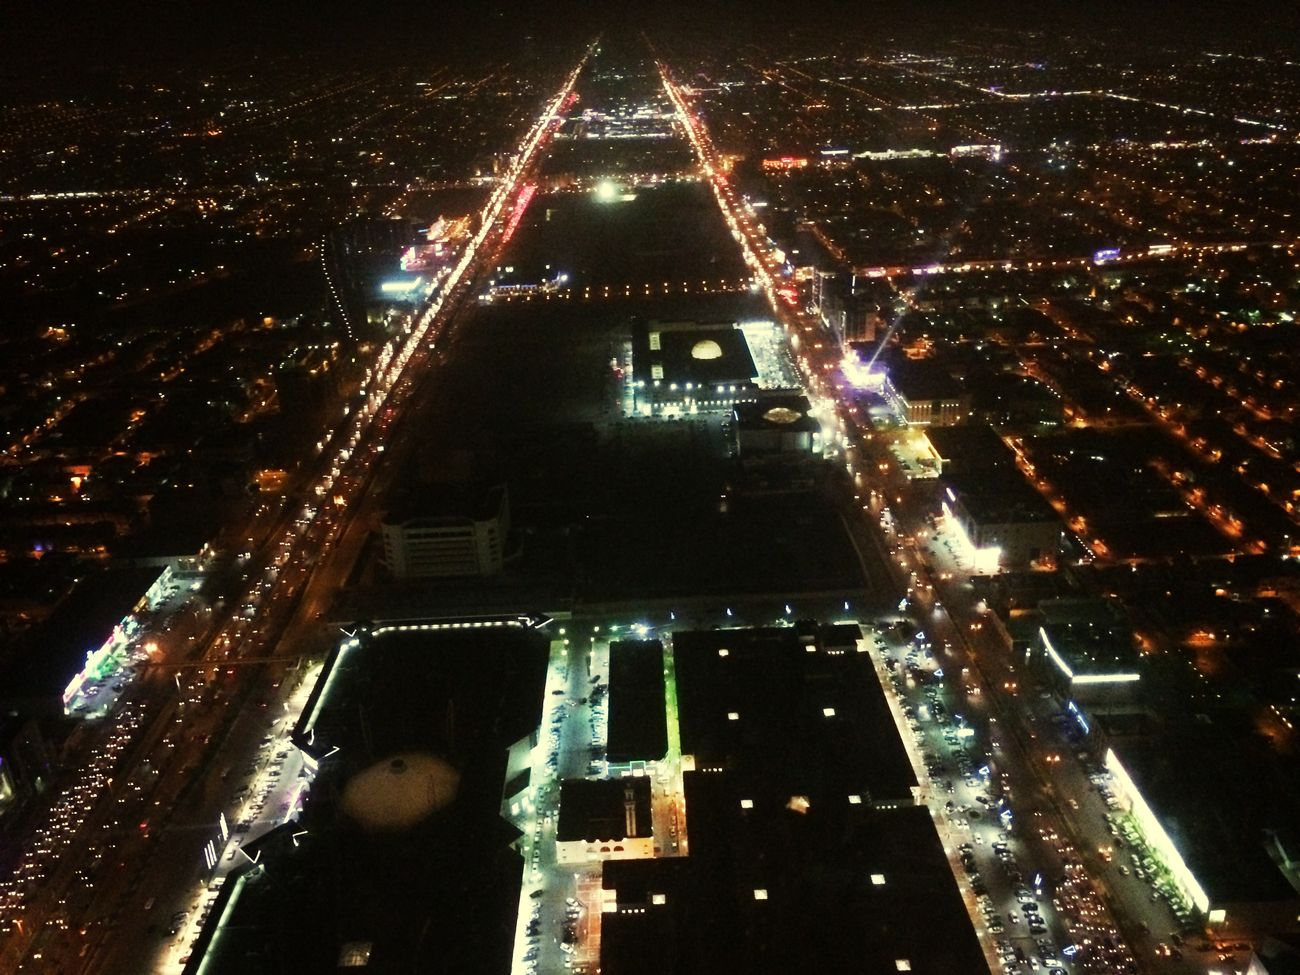 King Fahad and Olaya Street during night time.